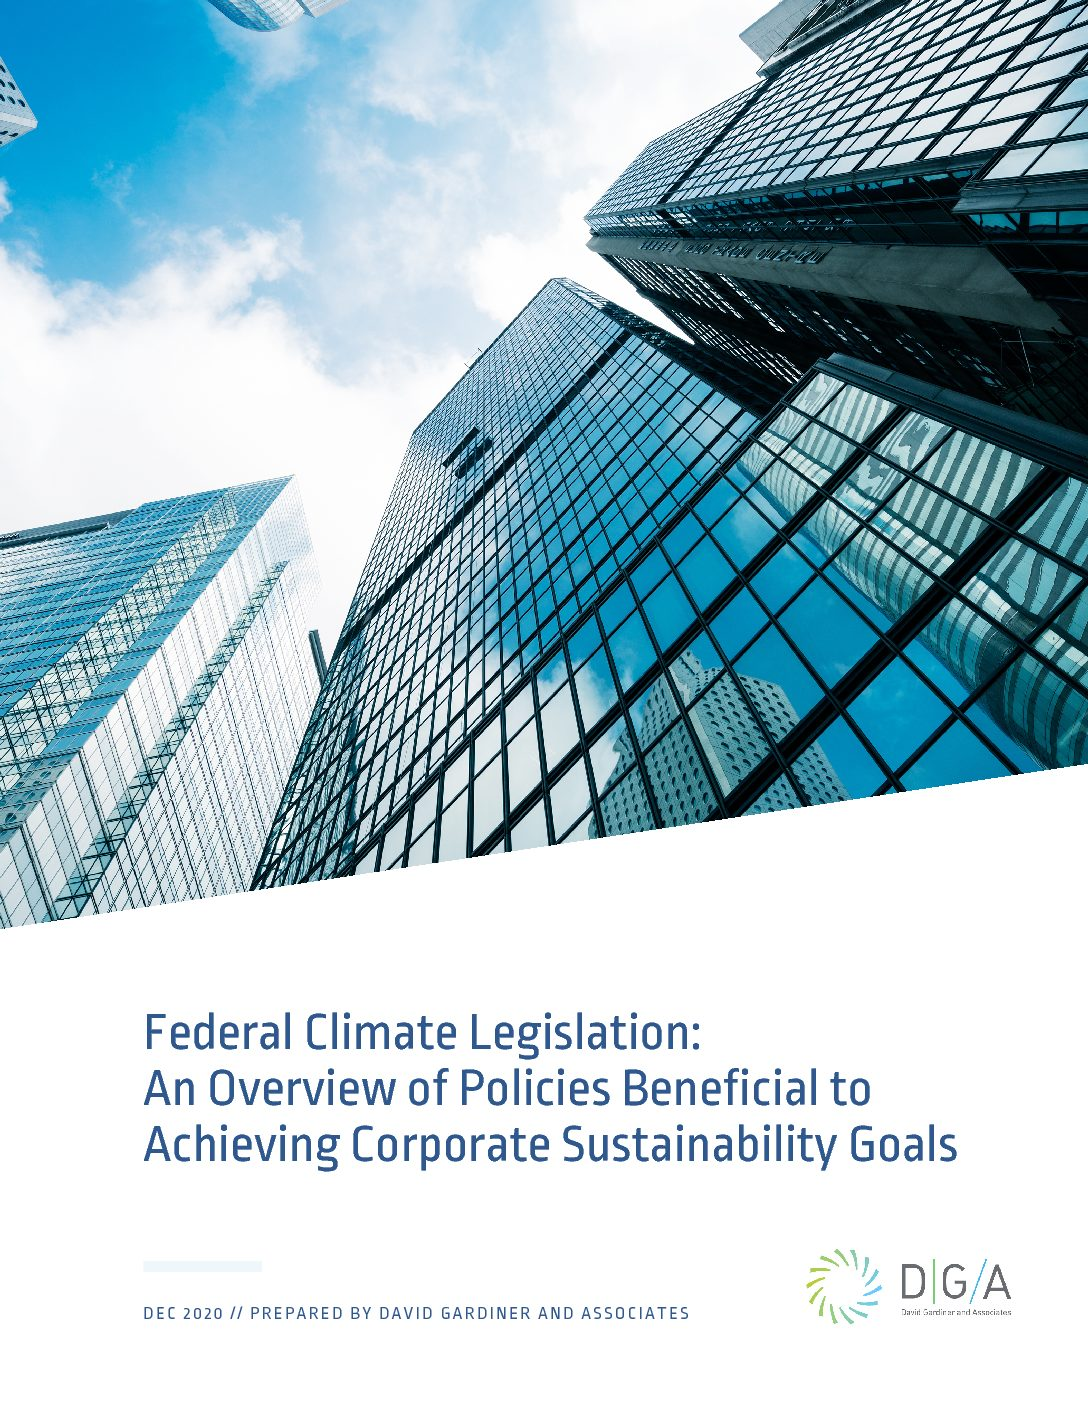 Federal Climate Legislation: An Overview of Policies Beneficial to Achieving Corporate Sustainability Goals